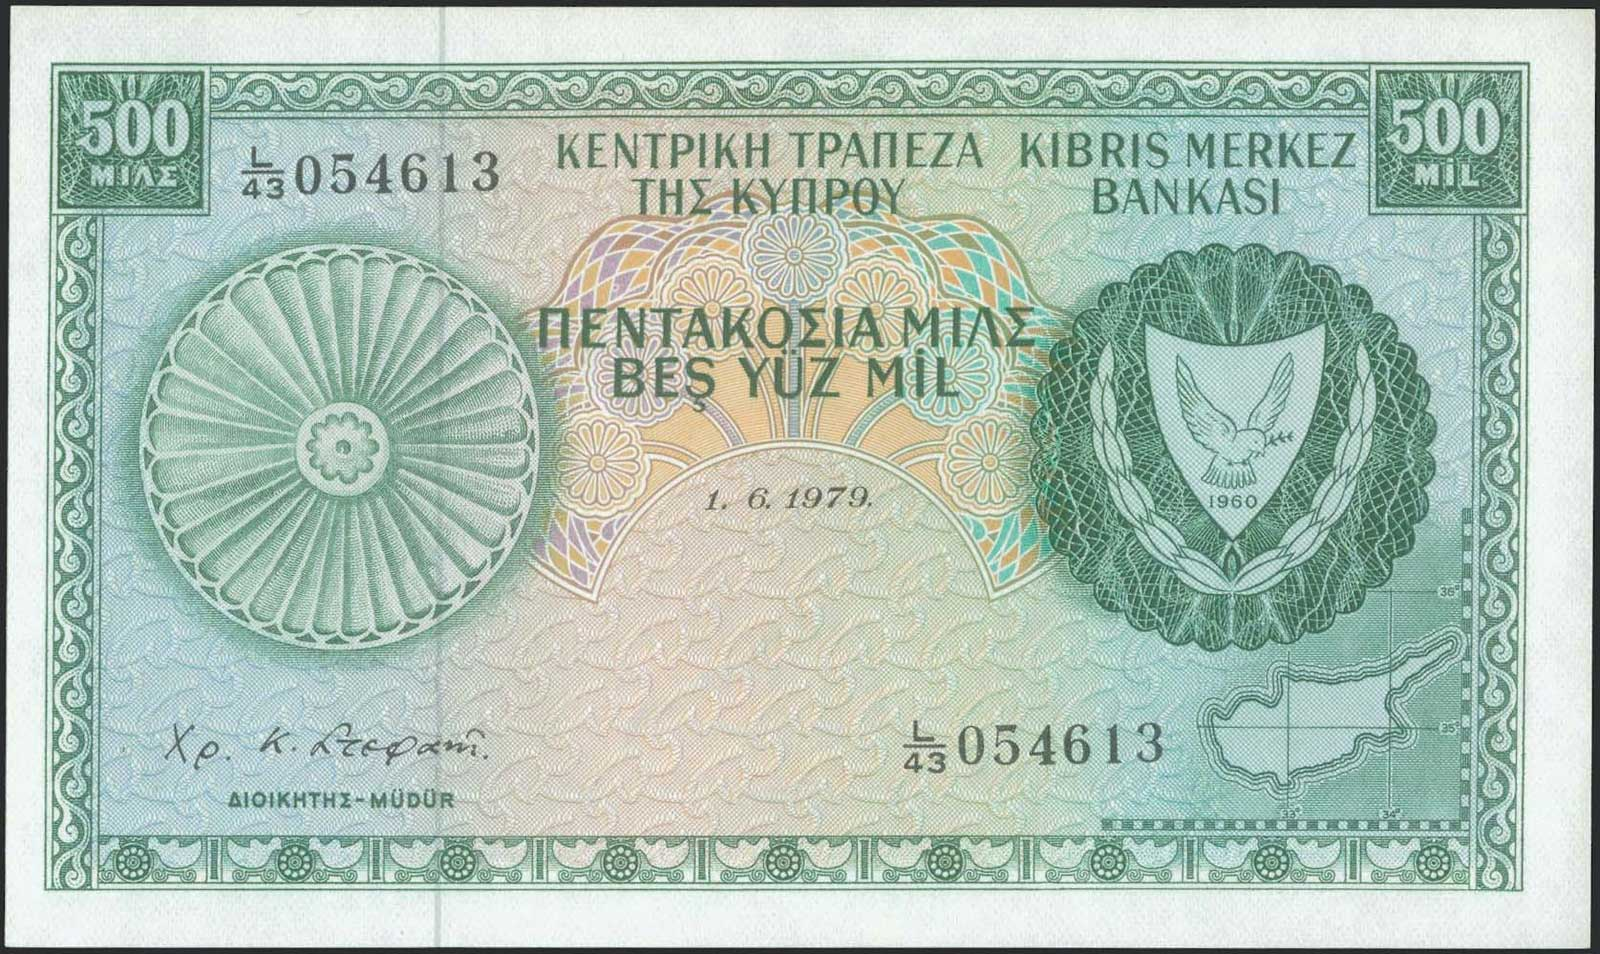 Lot 6363 - CYPRUS-  PAPER MONEY - BANKNOTES banknotes of cyprus -  A. Karamitsos Public & LIVE Bid Auction 588 Coins, Medals & Banknotes